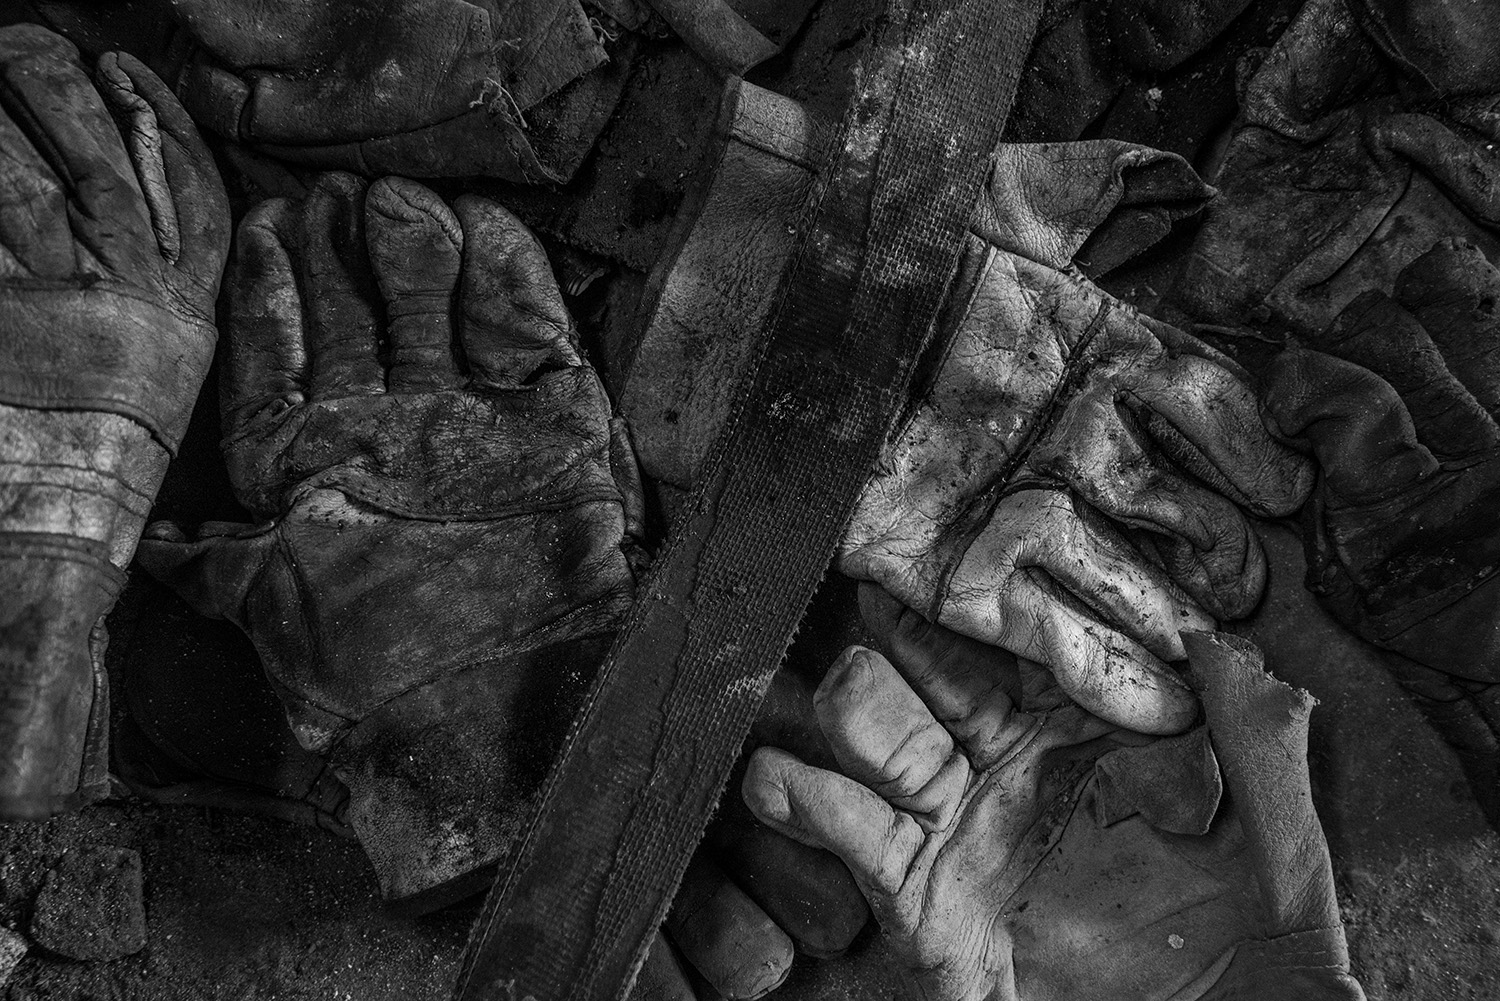 Belt and gloves of coal miners.